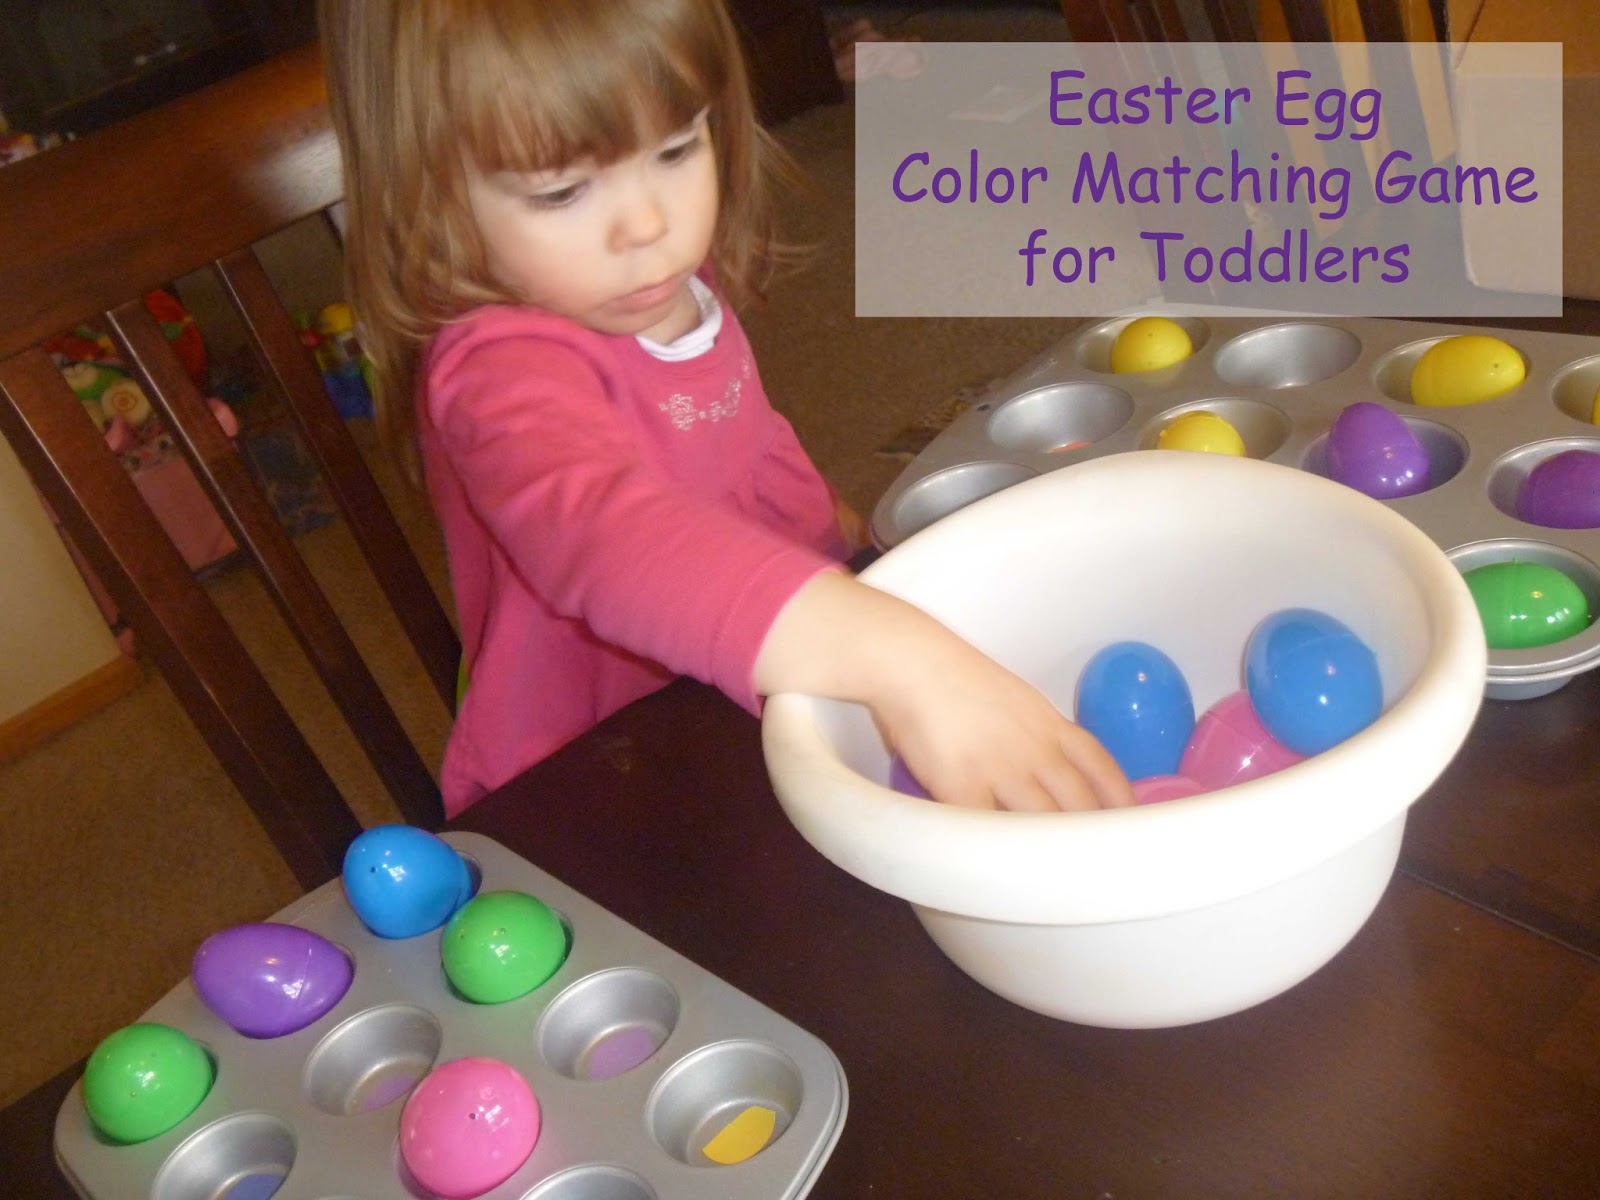 Teaching colors to a toddler